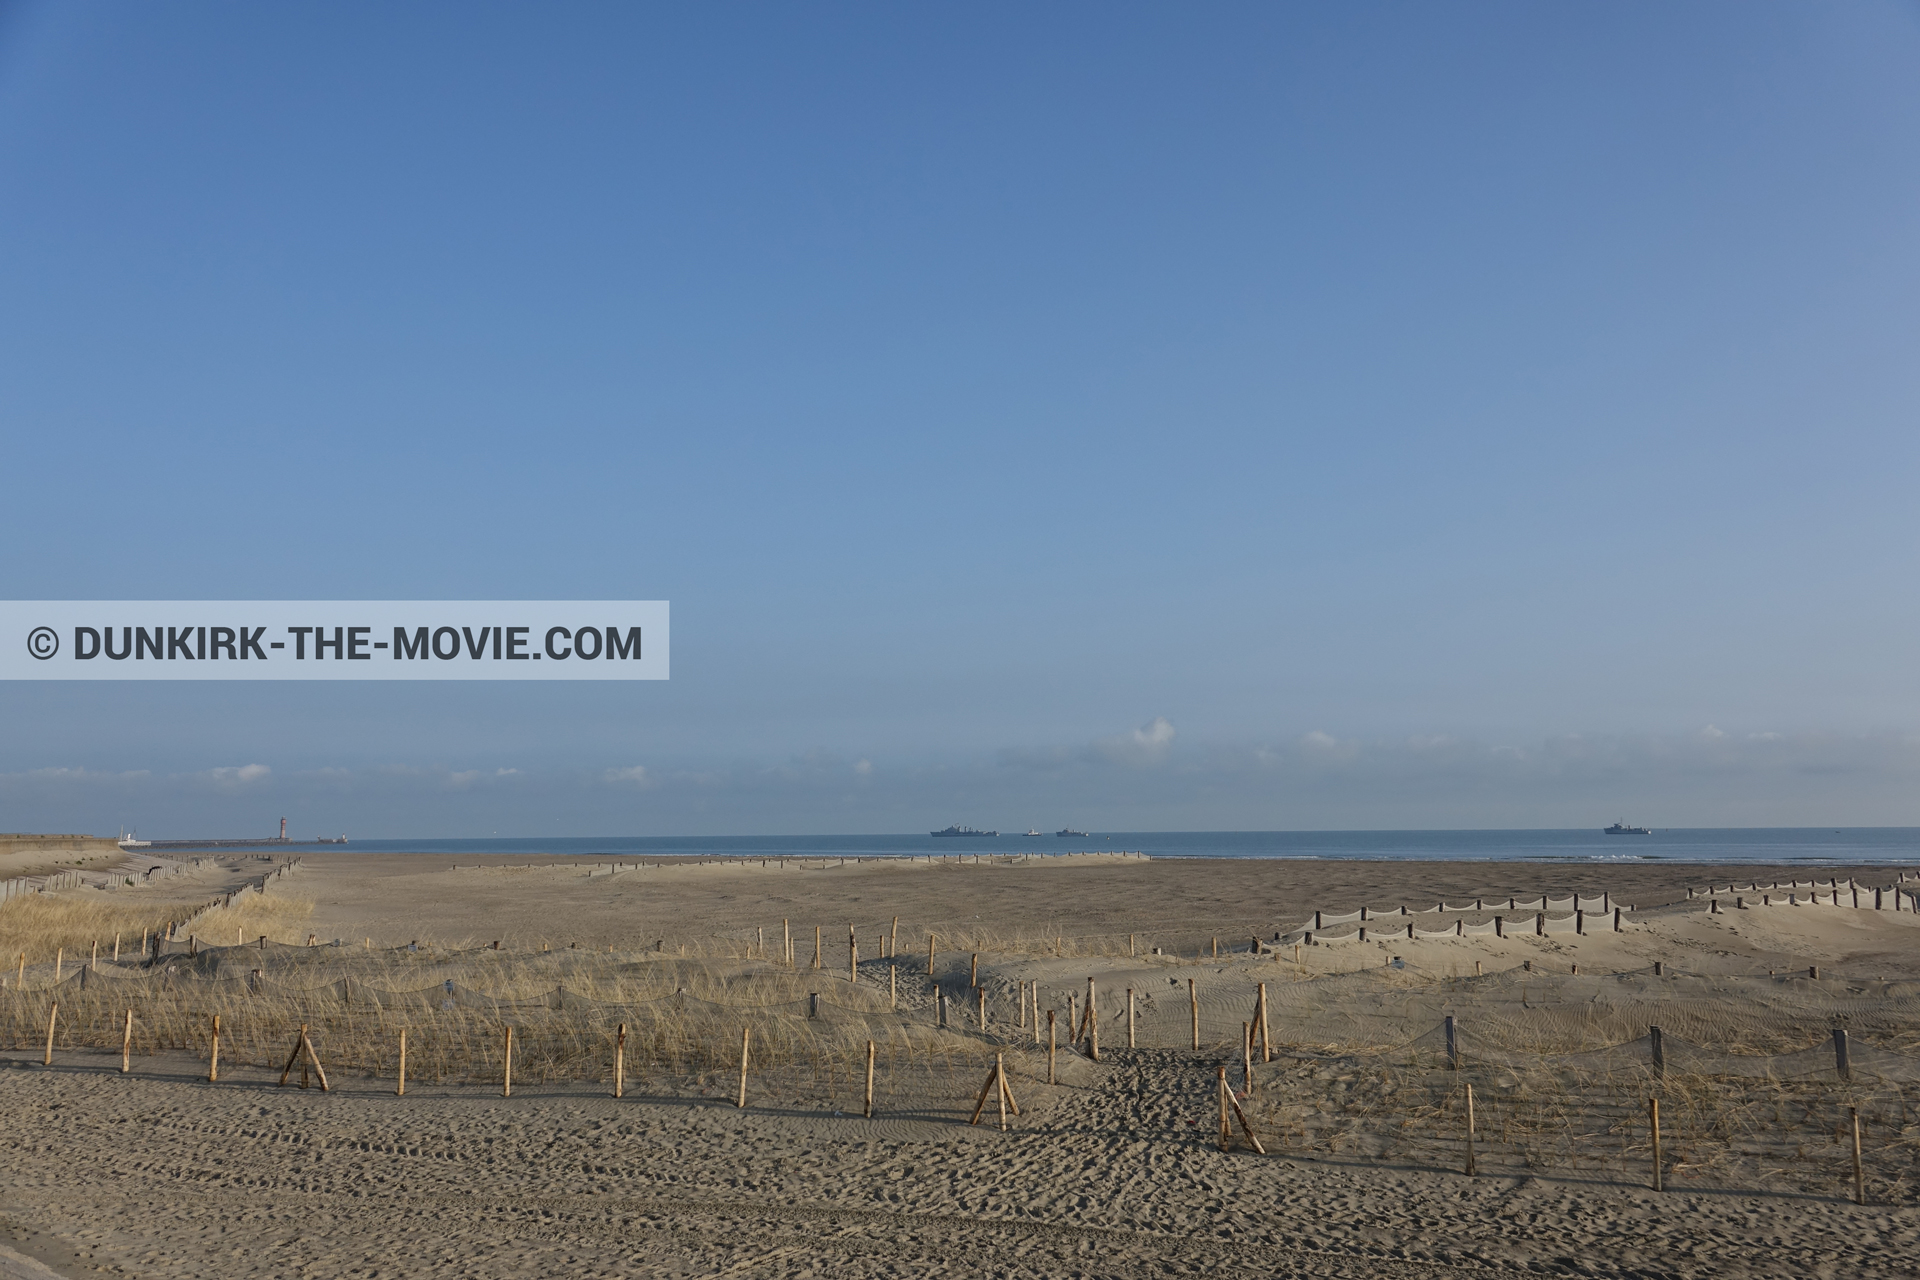 Picture with boat, blue sky, beach,  from behind the scene of the Dunkirk movie by Nolan